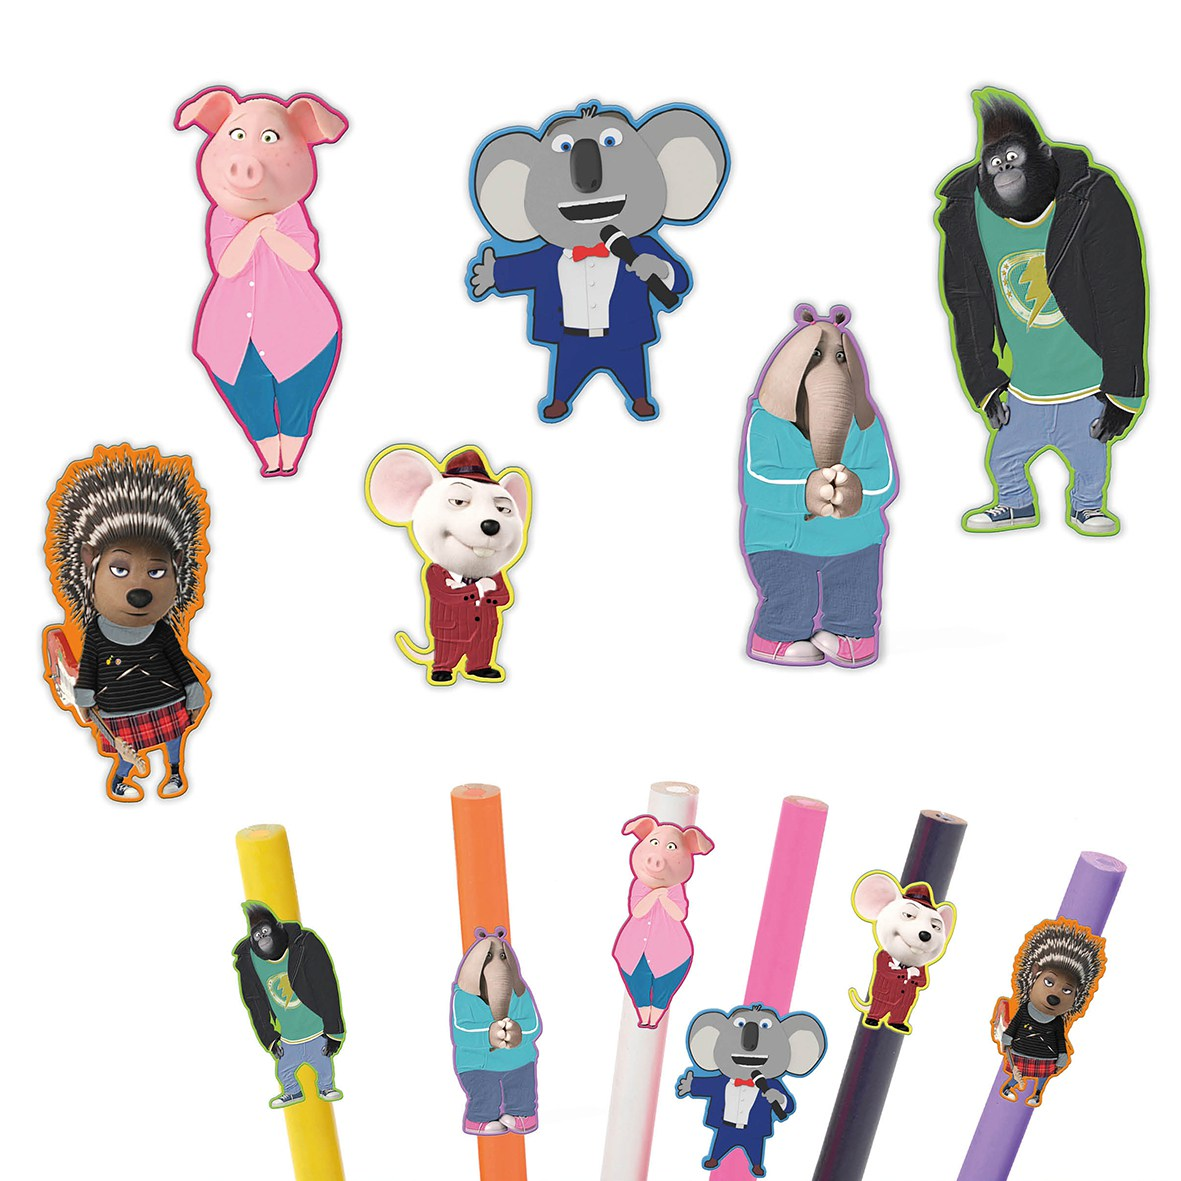 Singer clipart singing competition Movie Solitude Hampers! competition #singmovie